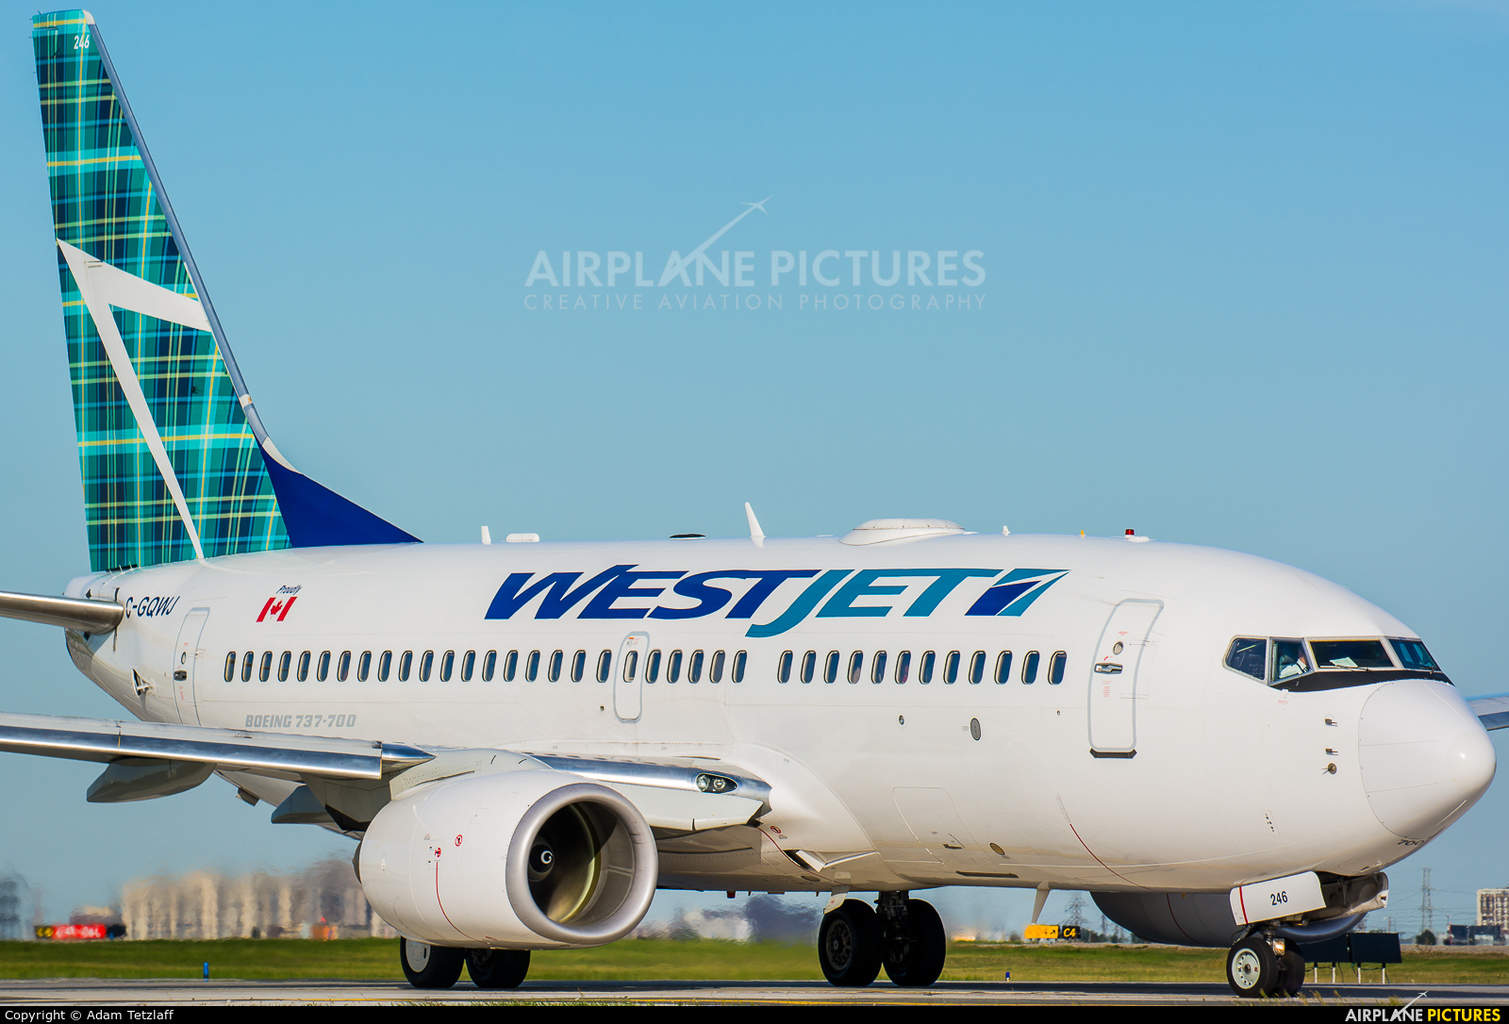 WestJet hires EY to assess sexual harassment claims